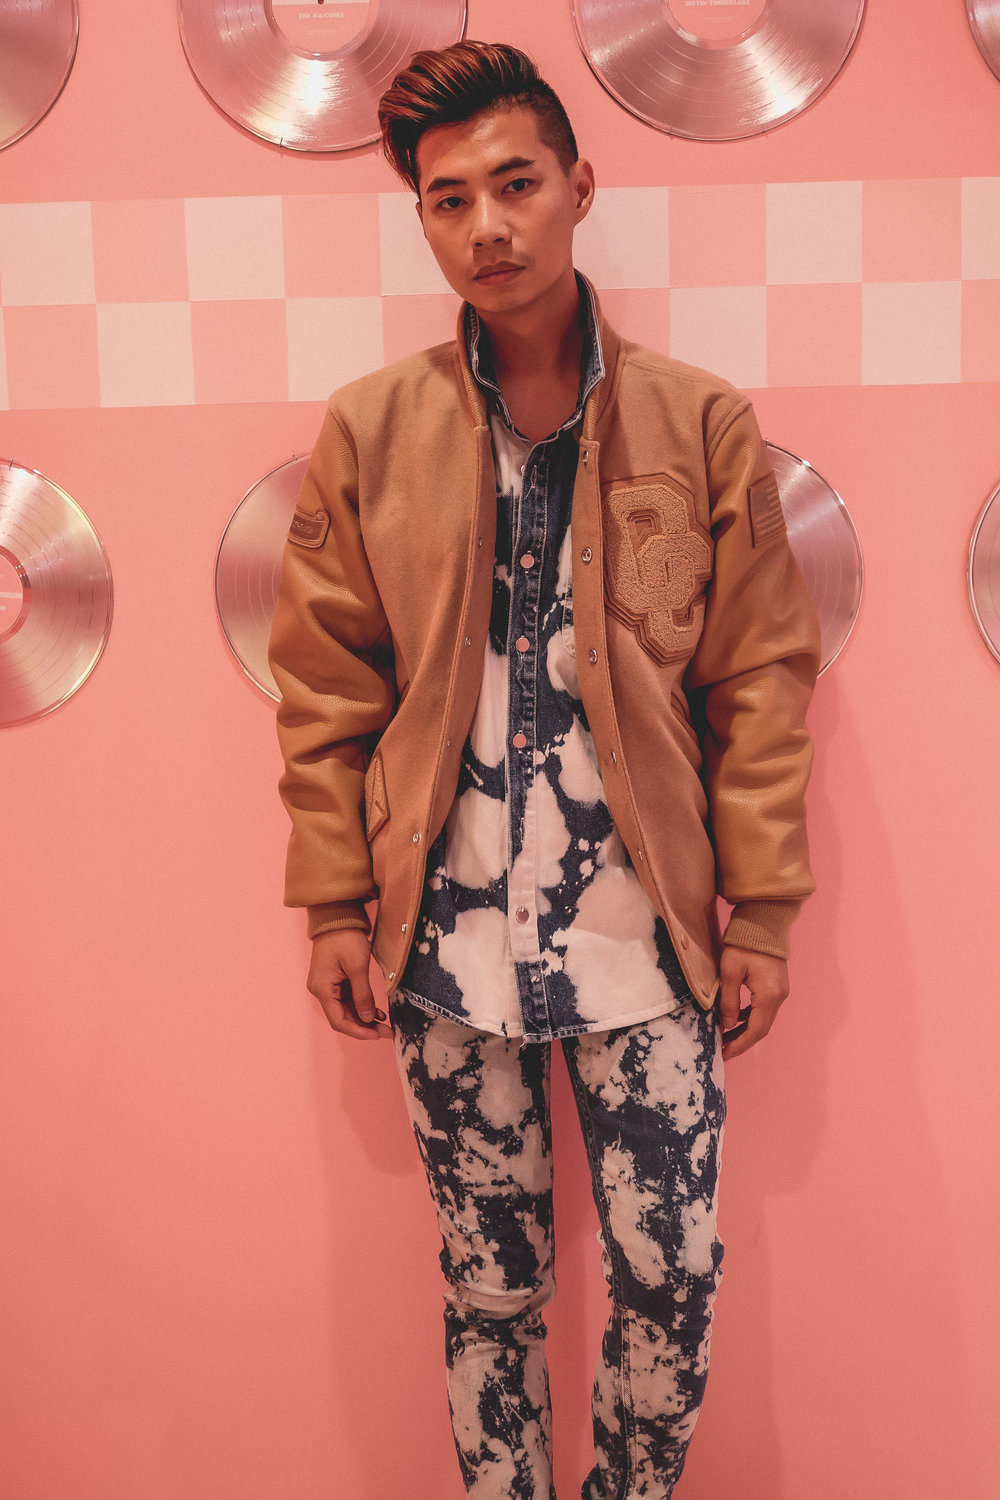 MYBELONGING-TOMMYLEI-TOP-MENSWEAR-BLOGGER-OPENING-CEREMONY-MENS-VARSITY-JACKET-MUSEUM-OF-ICE-CREAM-3.jpg